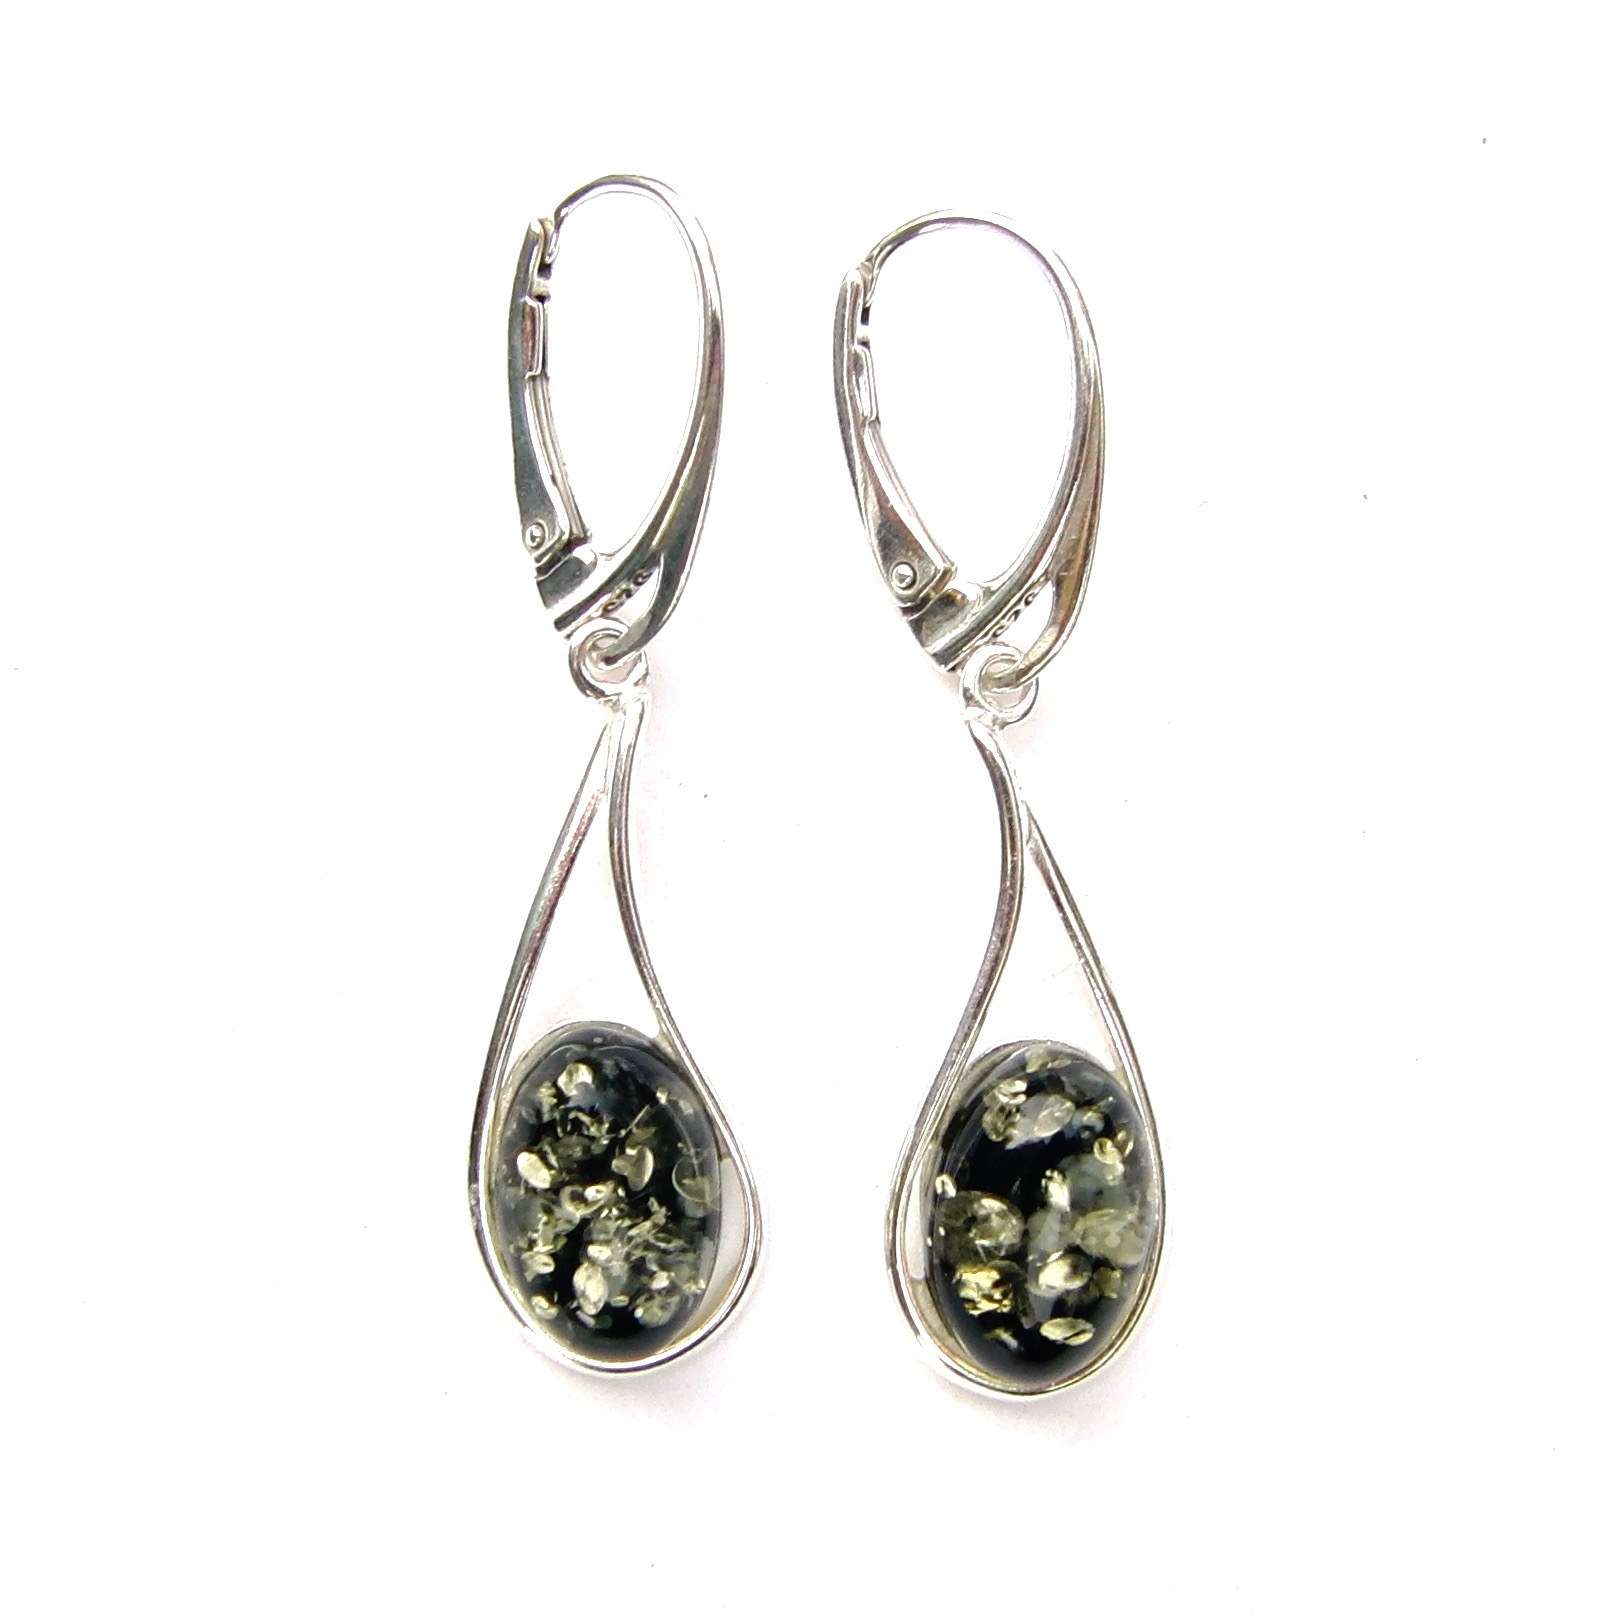 Stunning Large Green Amber Oval Earrings